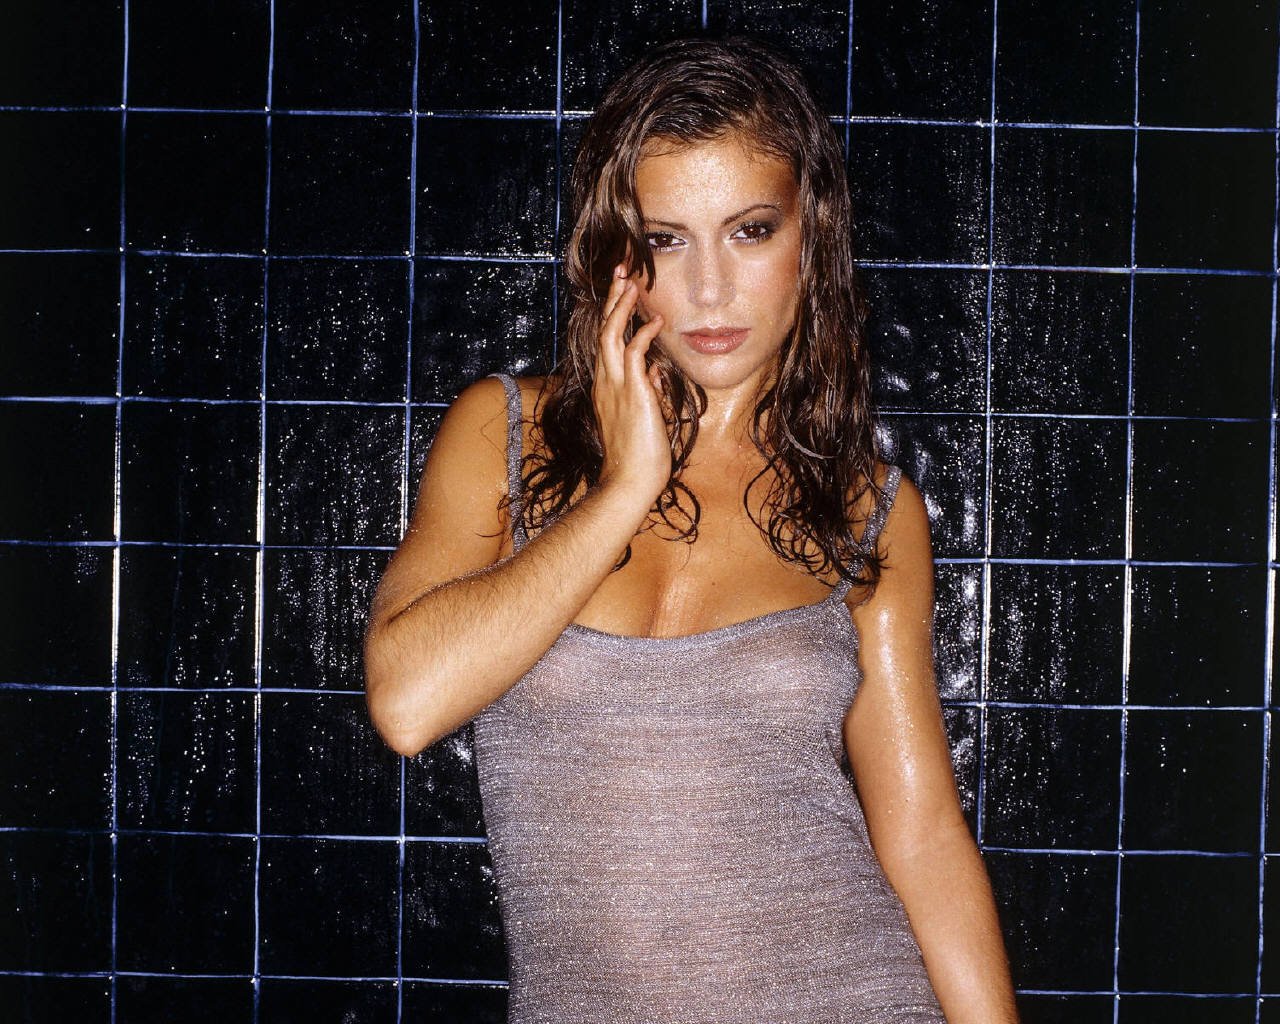 alyssa milano - alyssa milano wallpaper (182094) - fanpop